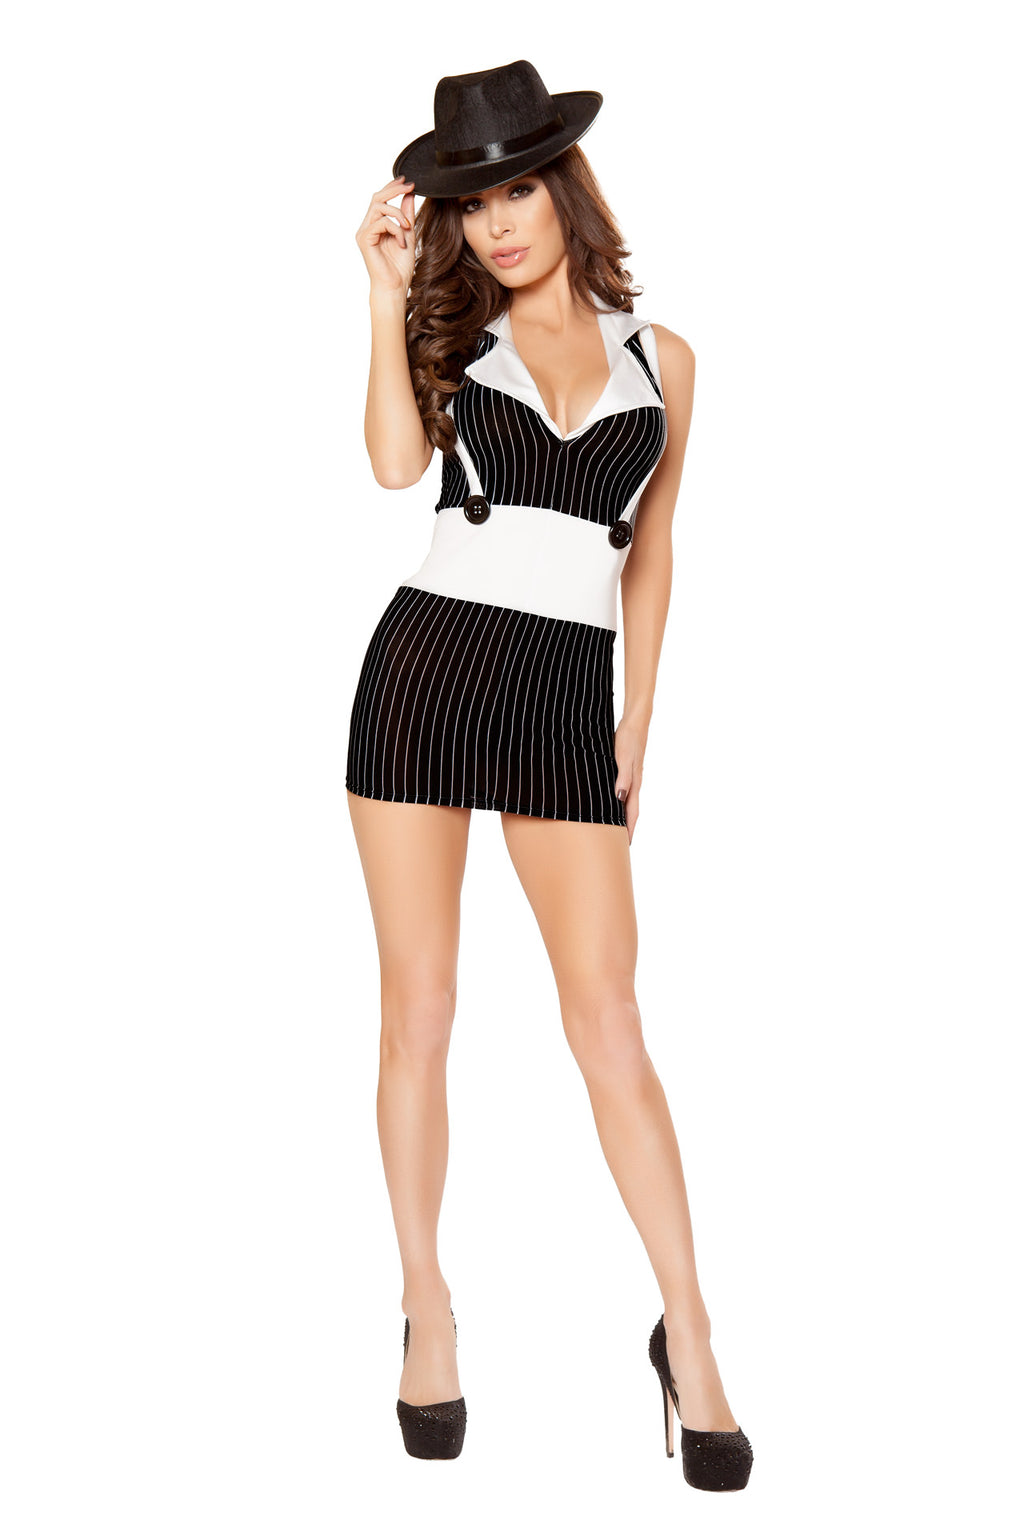 1-PC-Mafia-Gangster-Mob-Wife-Pinstriped-Suspender-Dress-Party-Costume